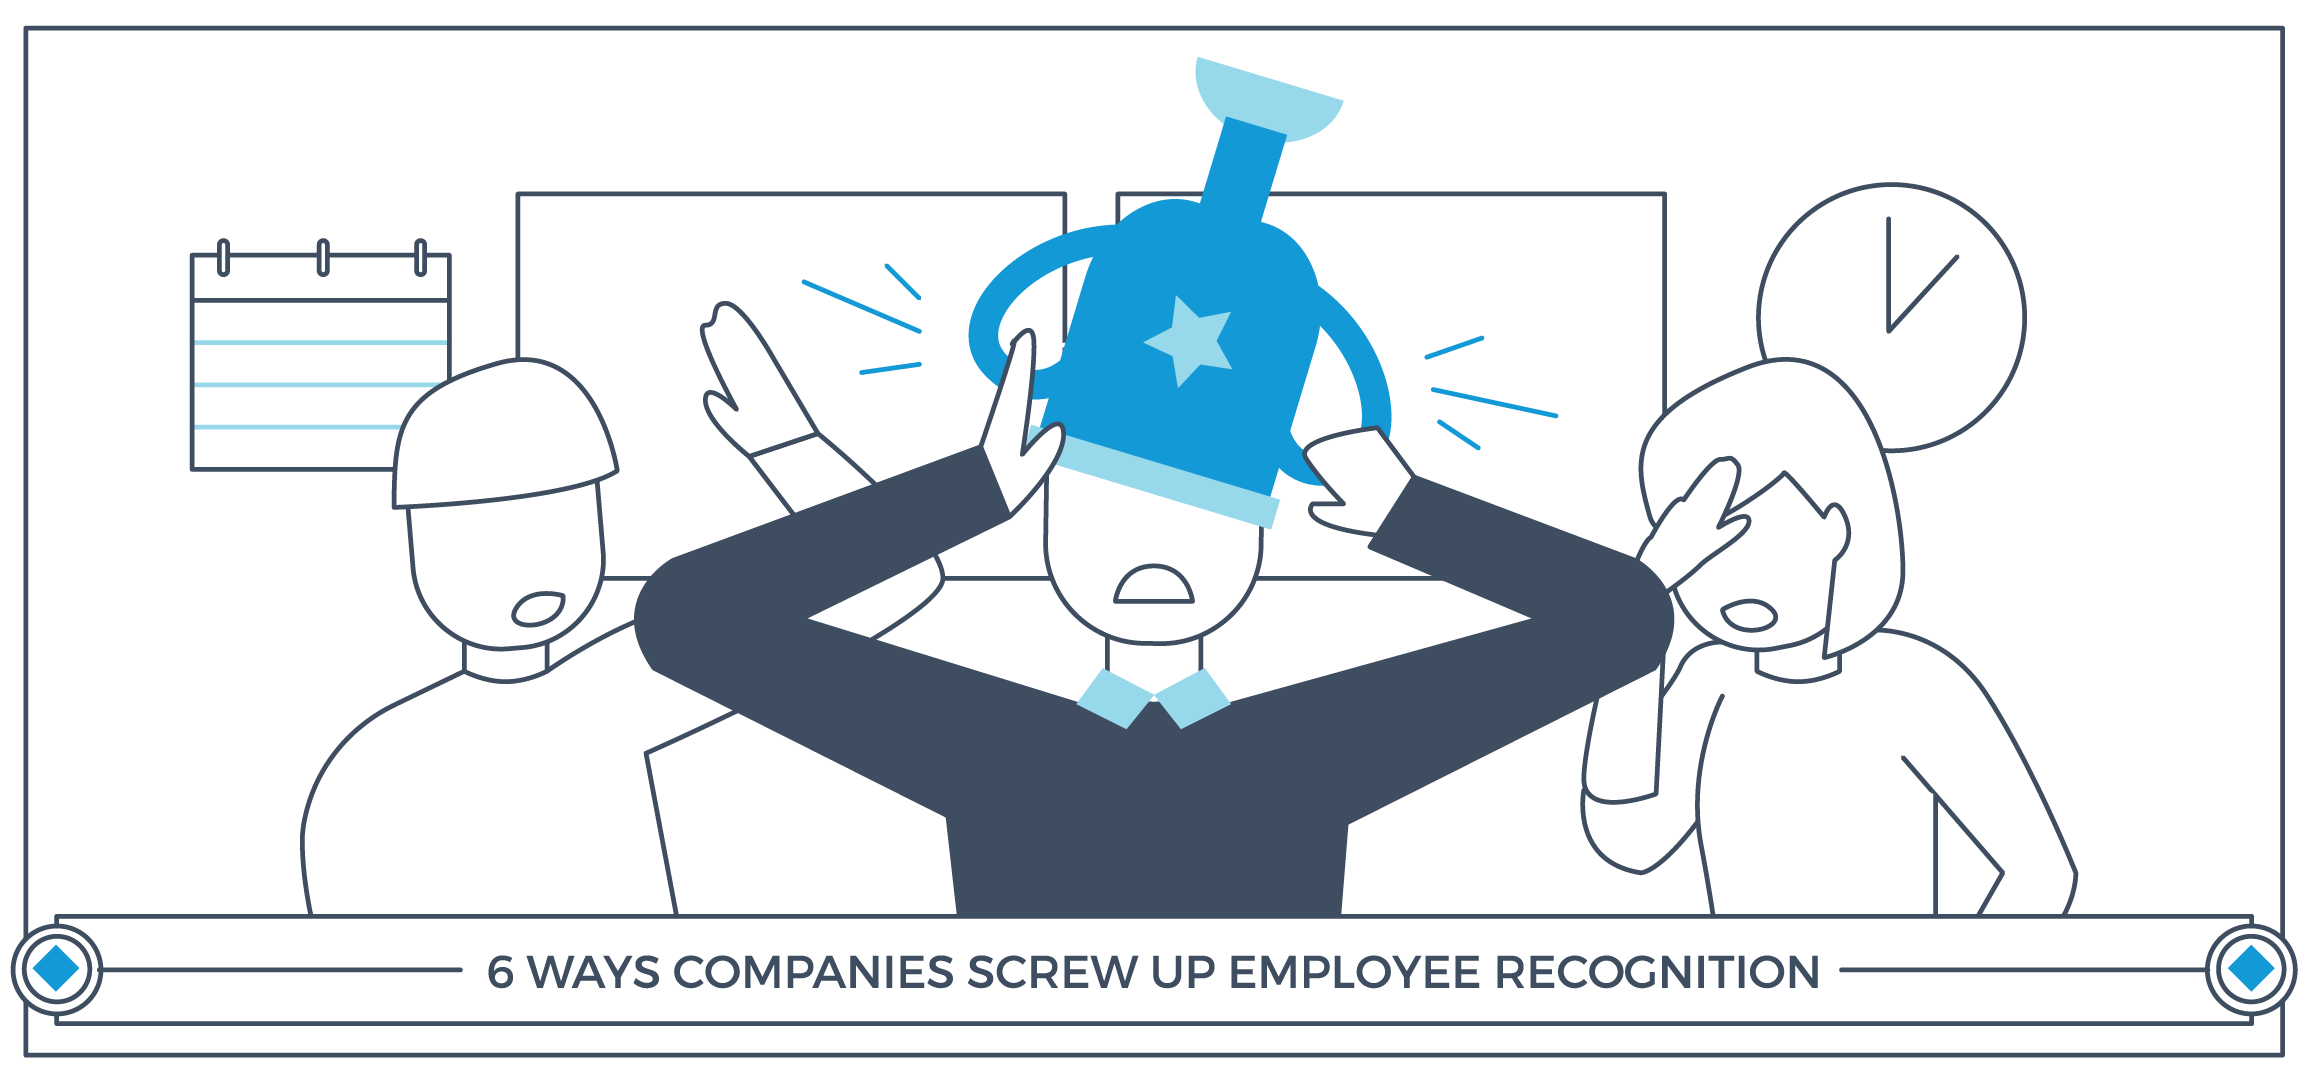 human resource management - employee recognition mistakes